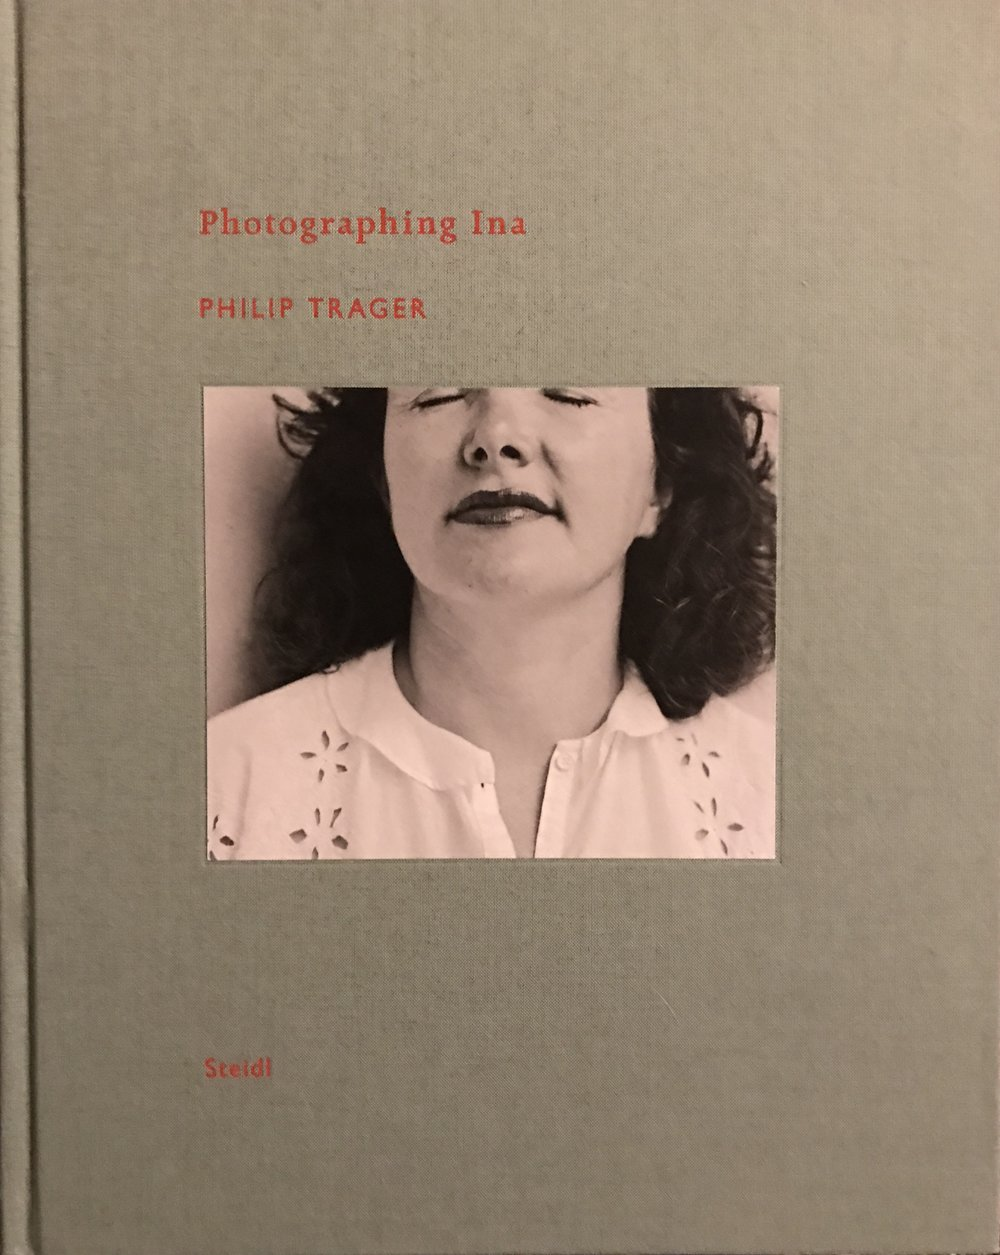 ilonBook_PhilipTrager_PhotographingIna.jpg